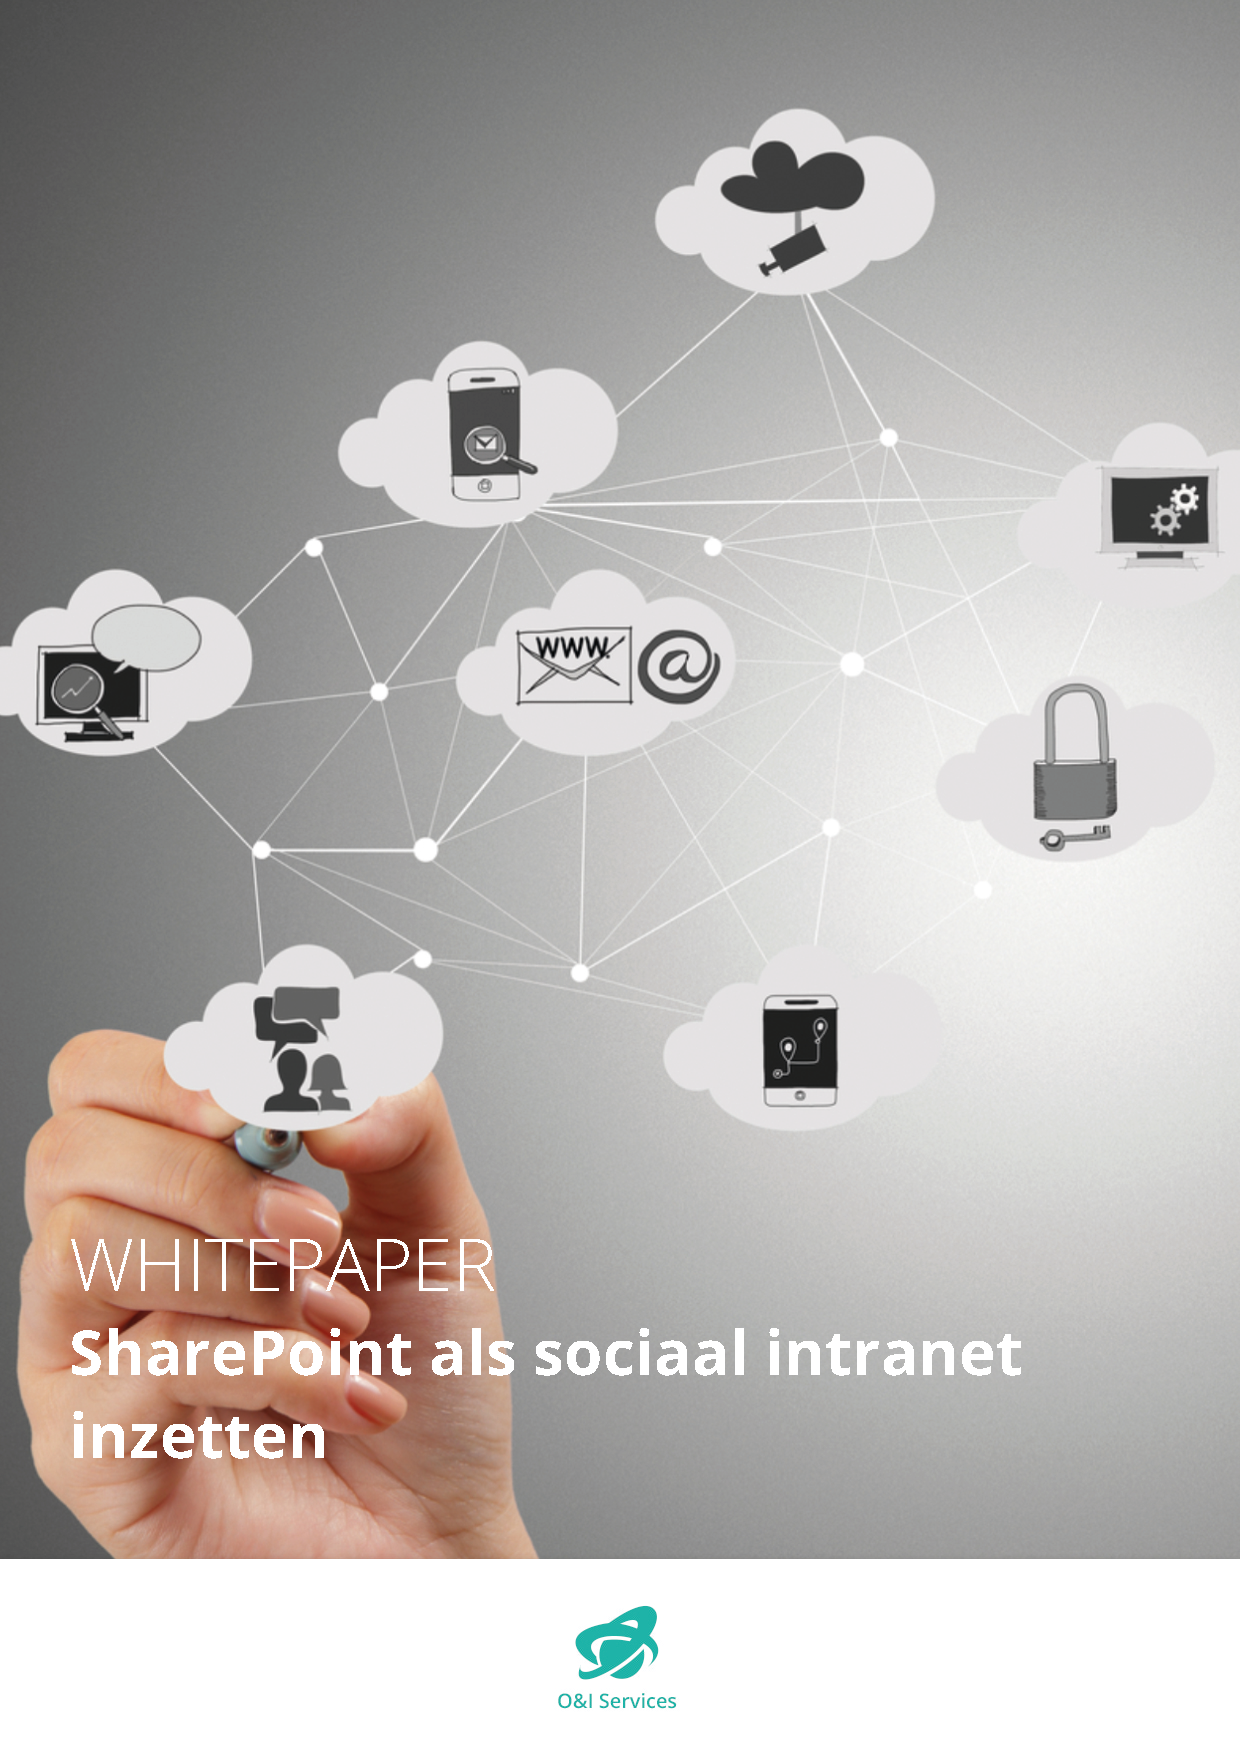 SharePoint als sociaal intranet inzetten - O&I Services